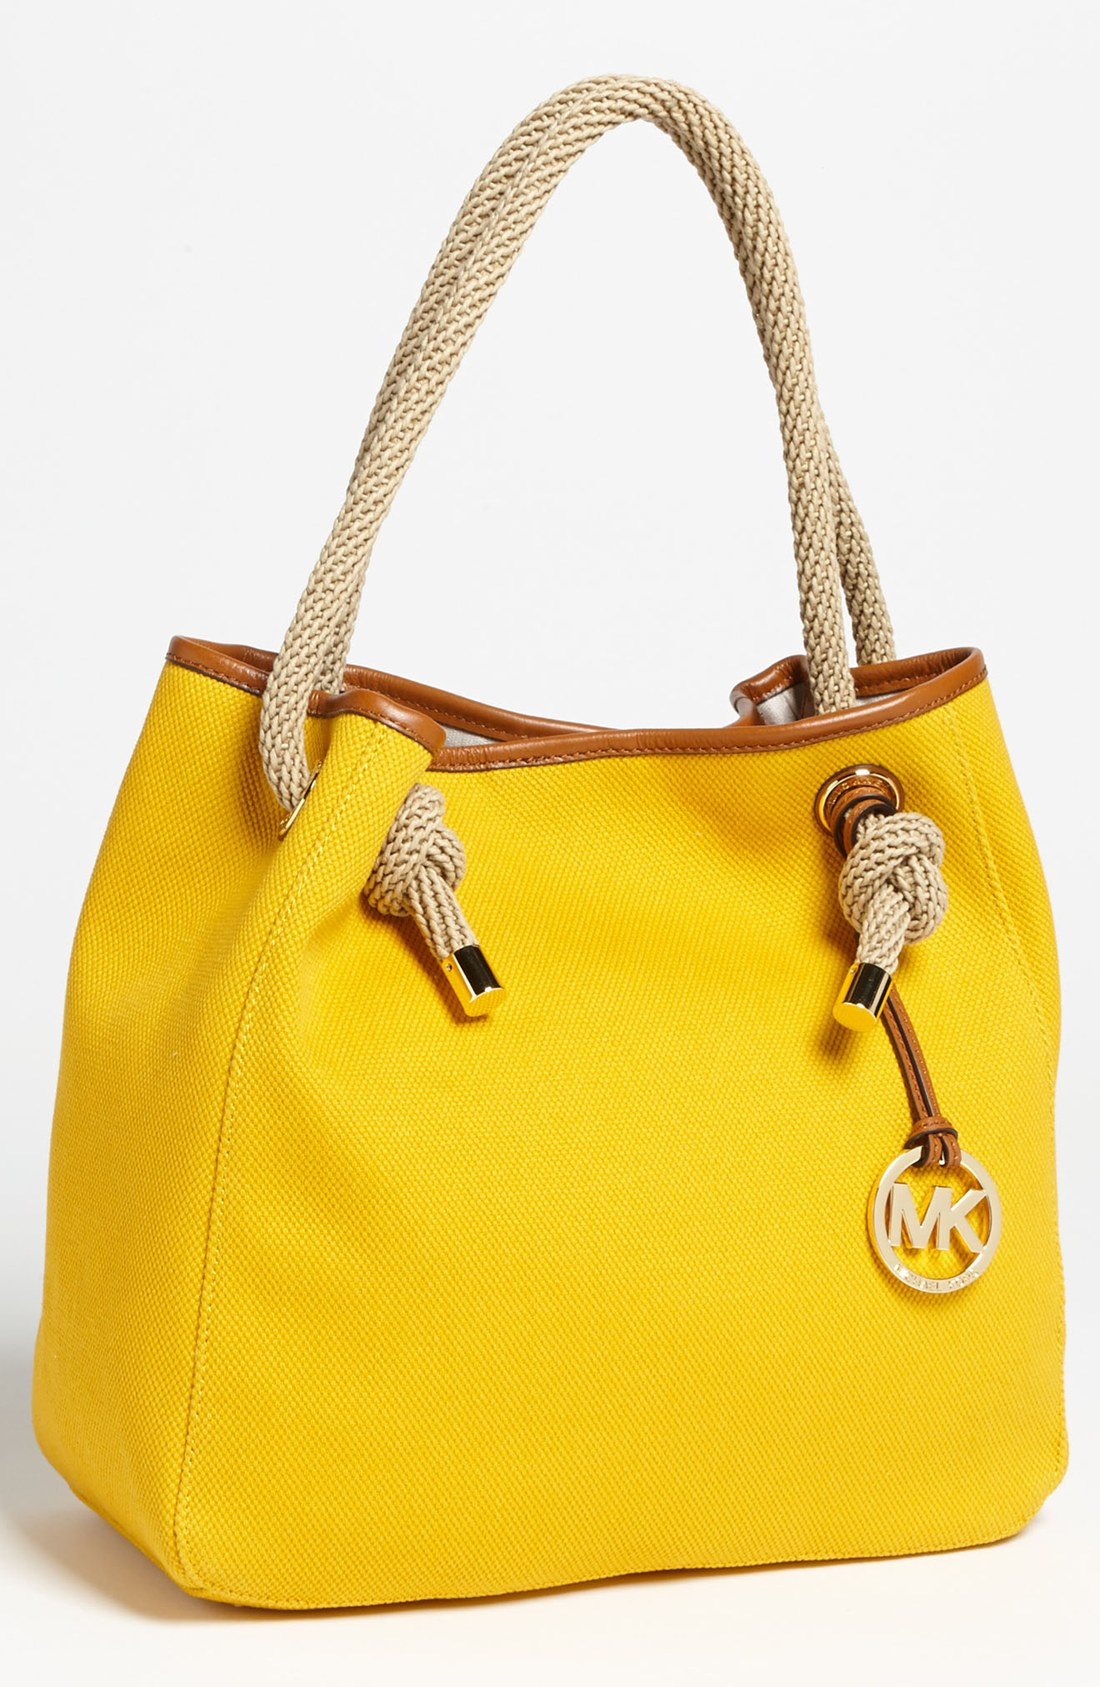 Bolsa Michael Kors Marina : Michael kors marina large tote in yellow end of